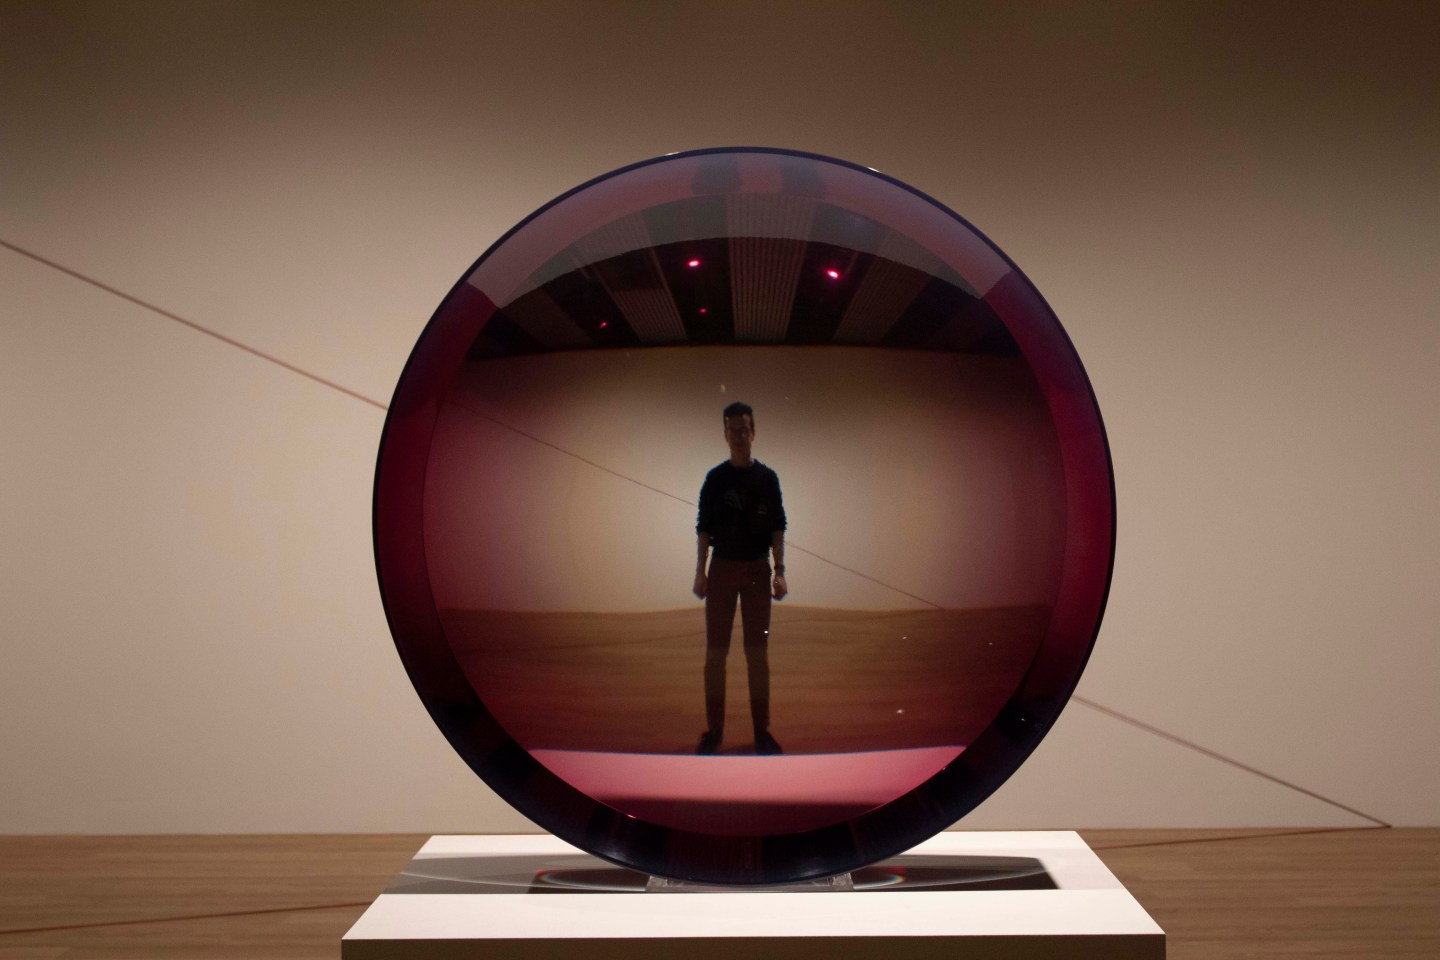 Man stands behind concave purple glass giving the illusion of being very far away